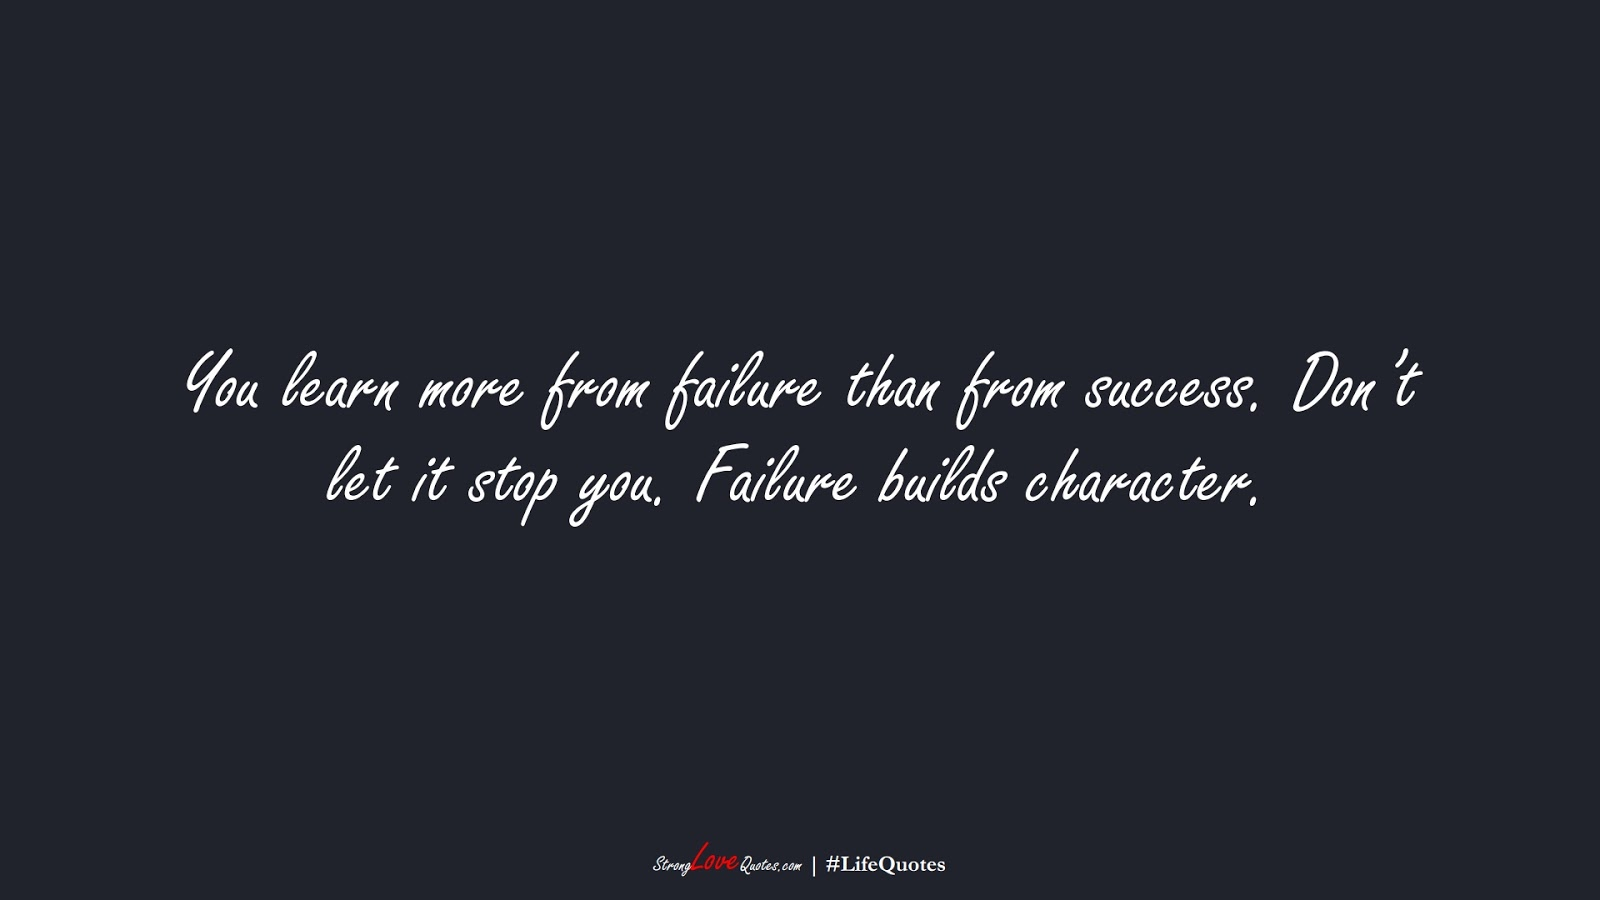 You learn more from failure than from success. Don't let it stop you. Failure builds character.FALSE